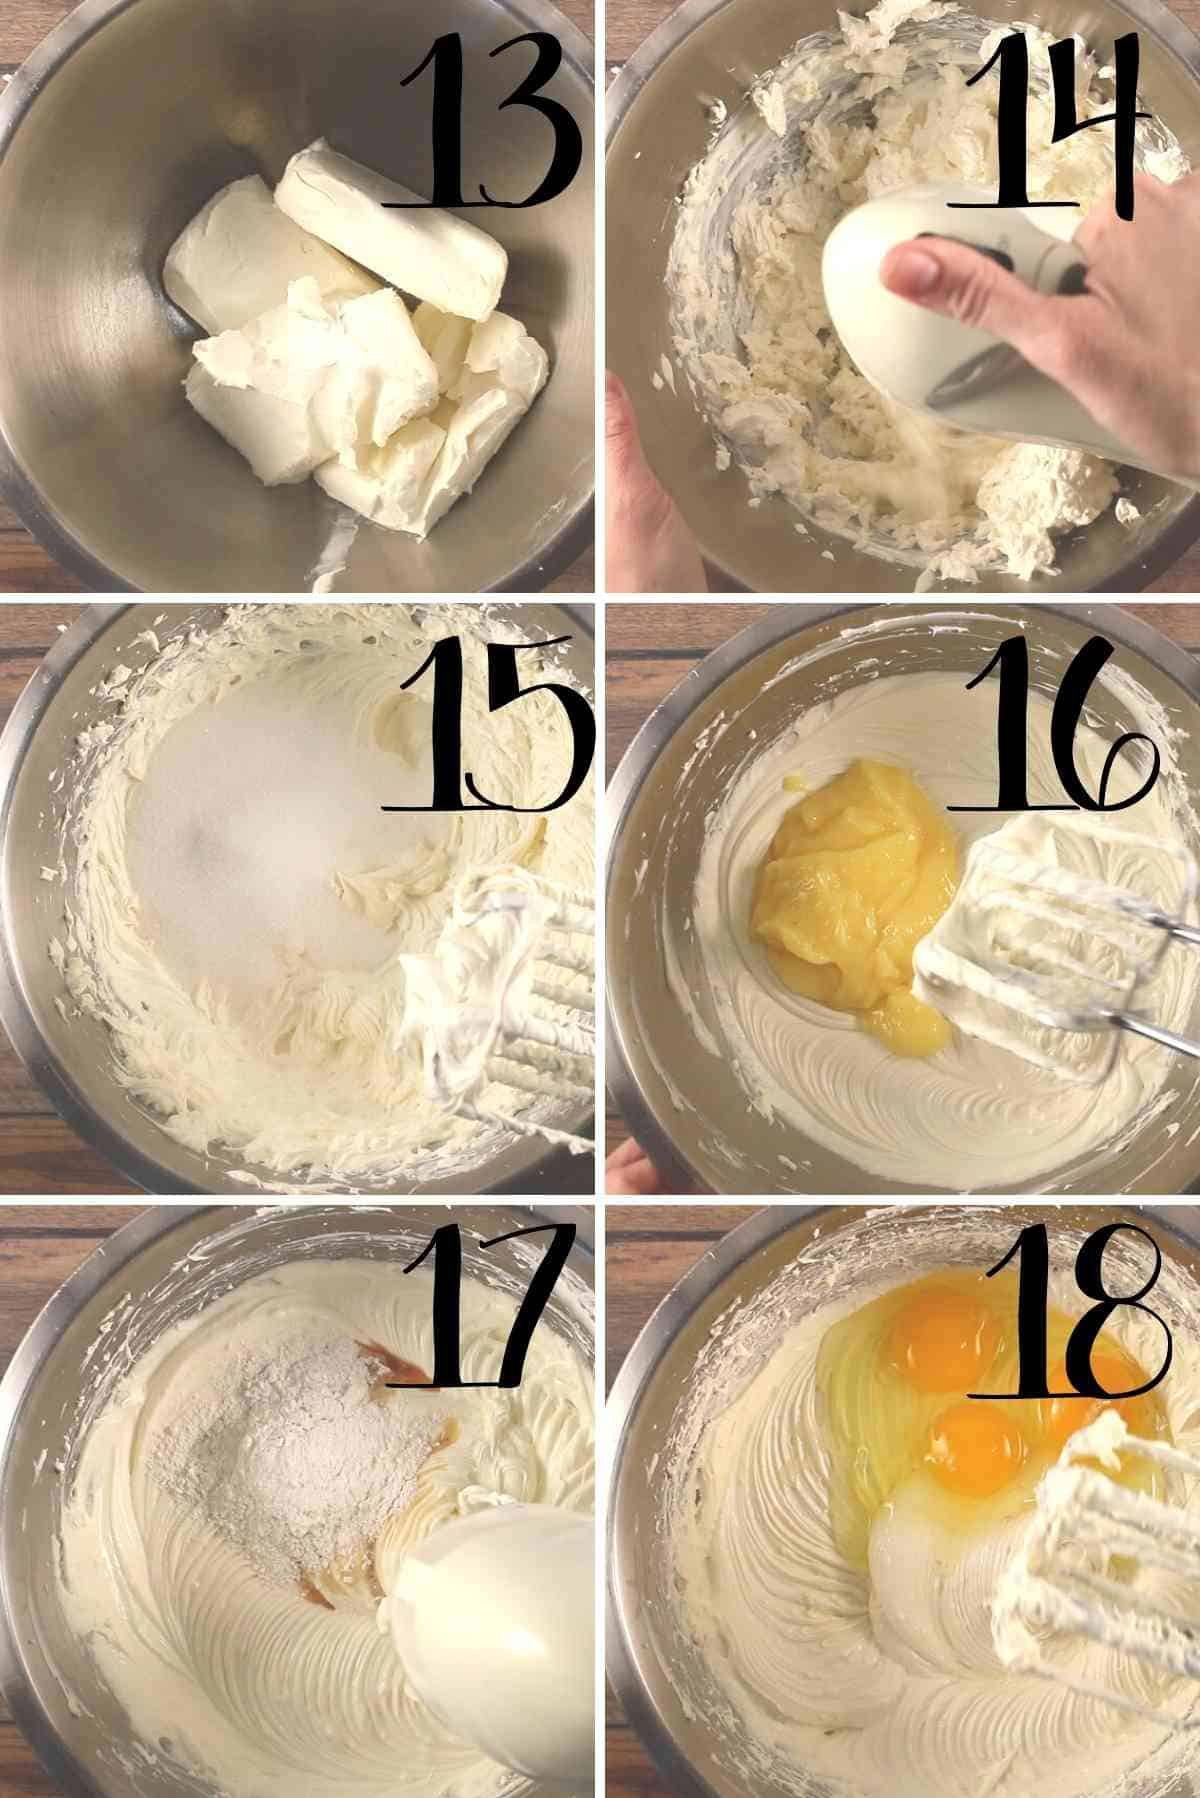 Making of cheesecake filling.